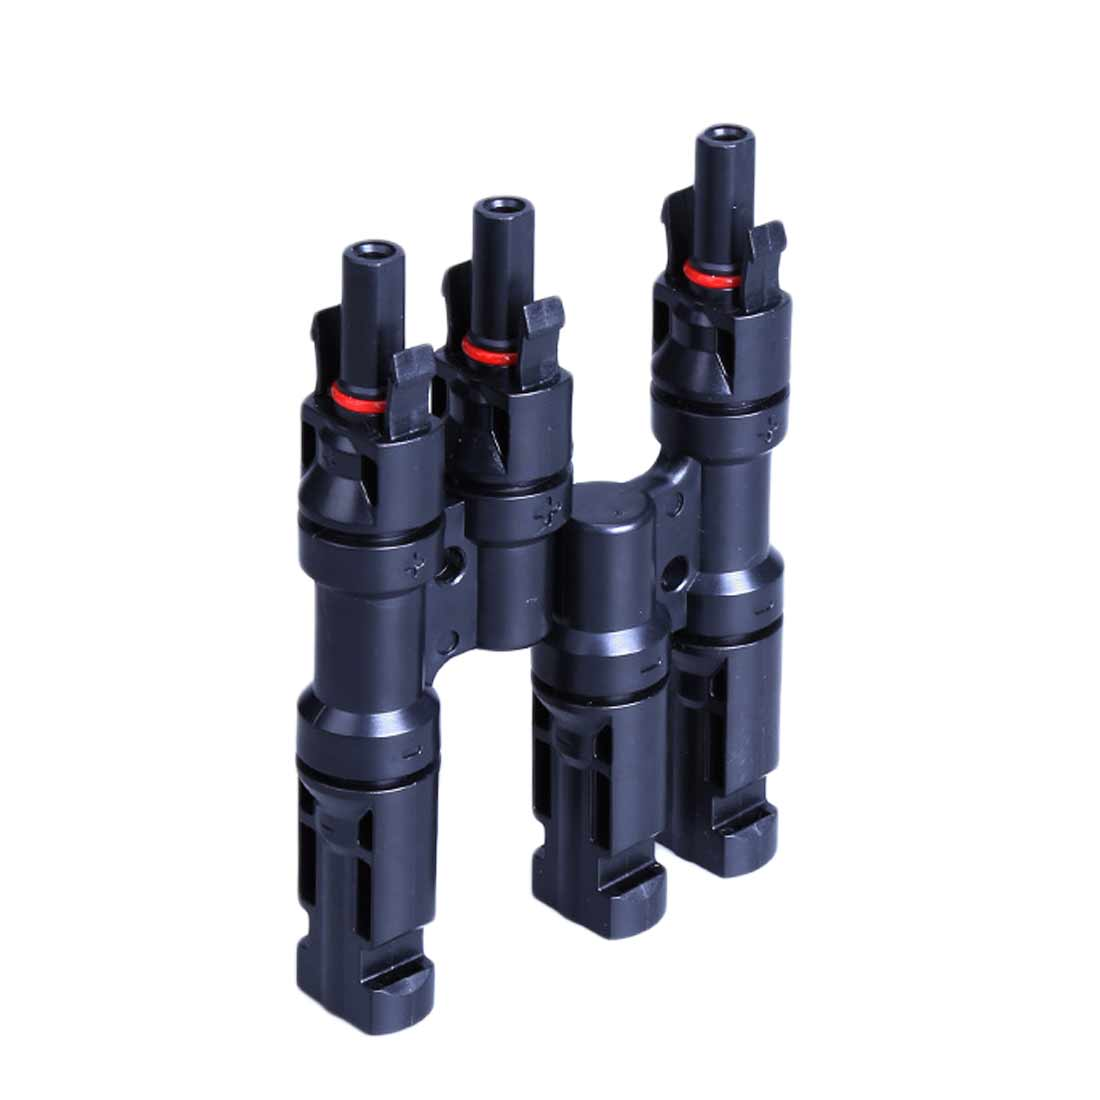 Pair of MC4 T-branch cable connectors //plugs for solar panels and PV systems